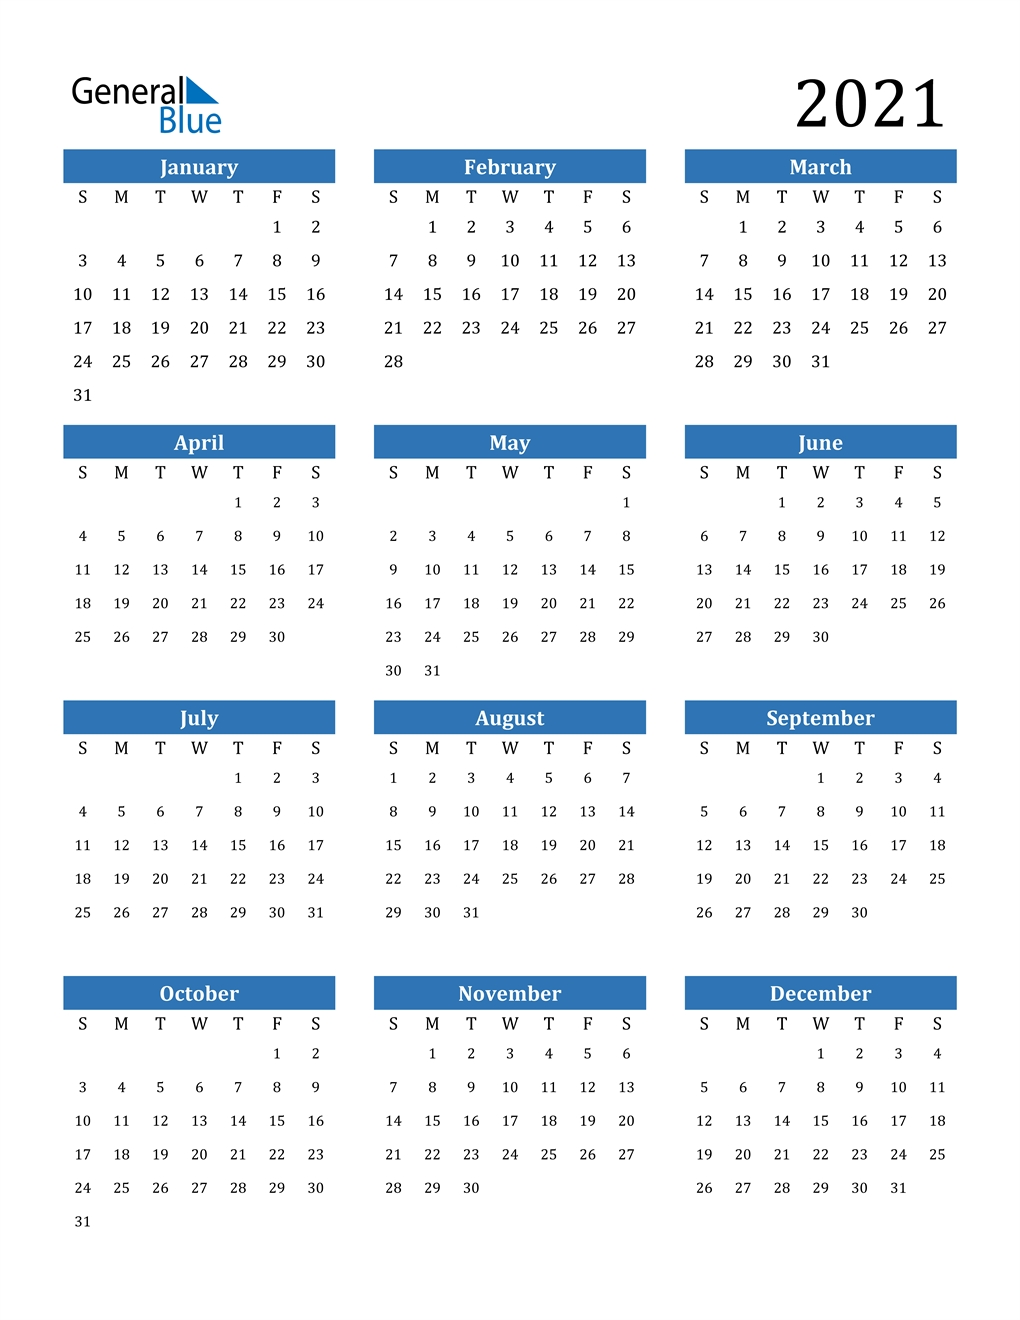 Get 2021 Yearly Calendar Printable Pdf